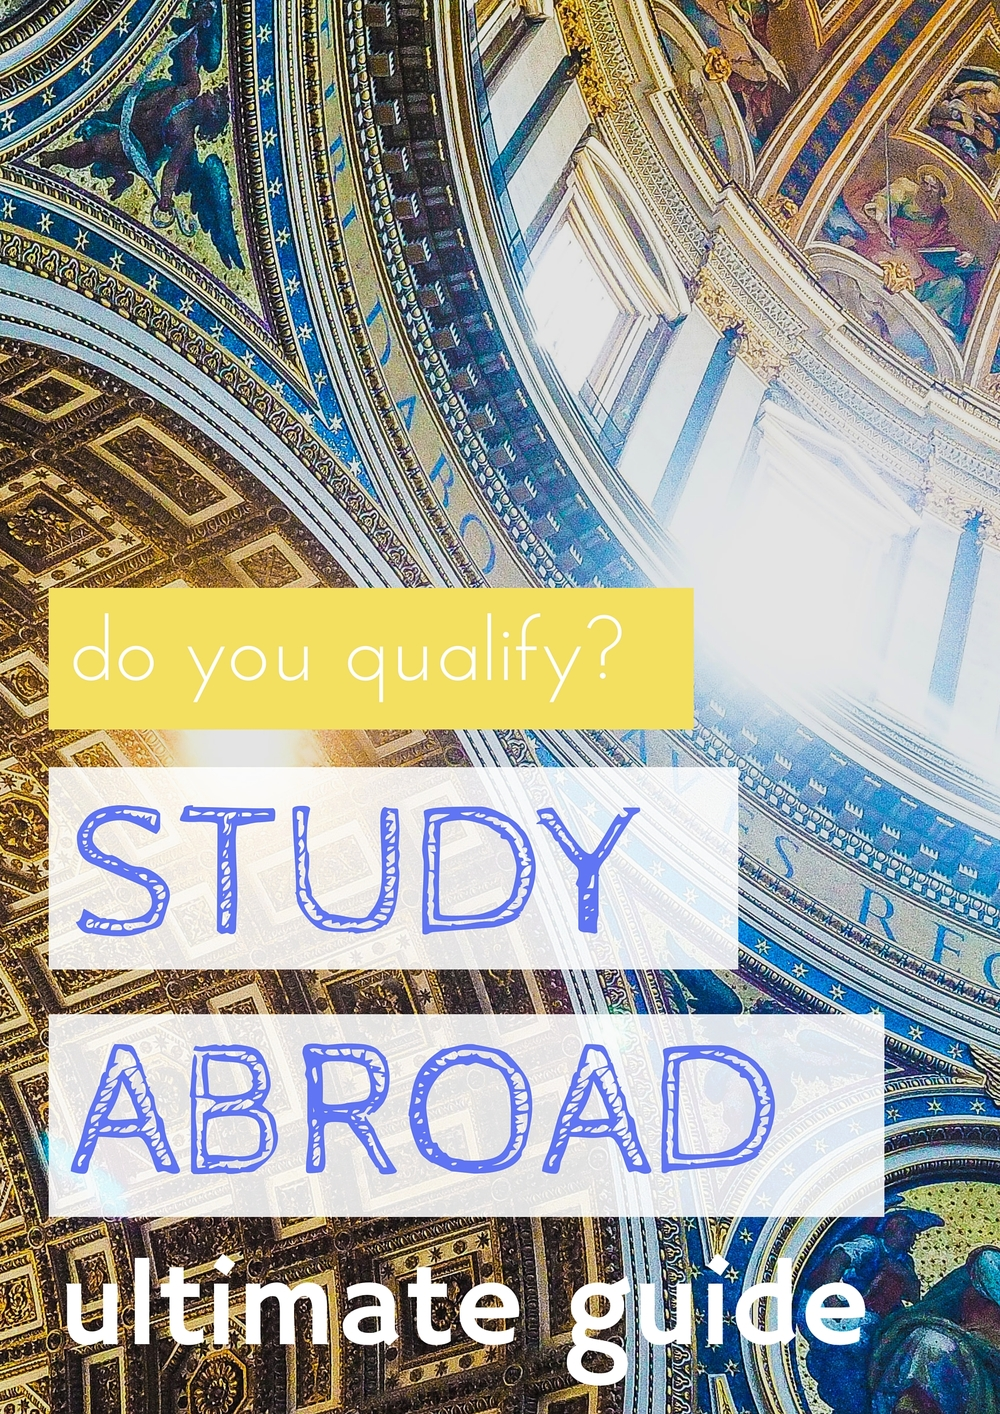 What exactly do I need in order to study abroad? What's required to apply?